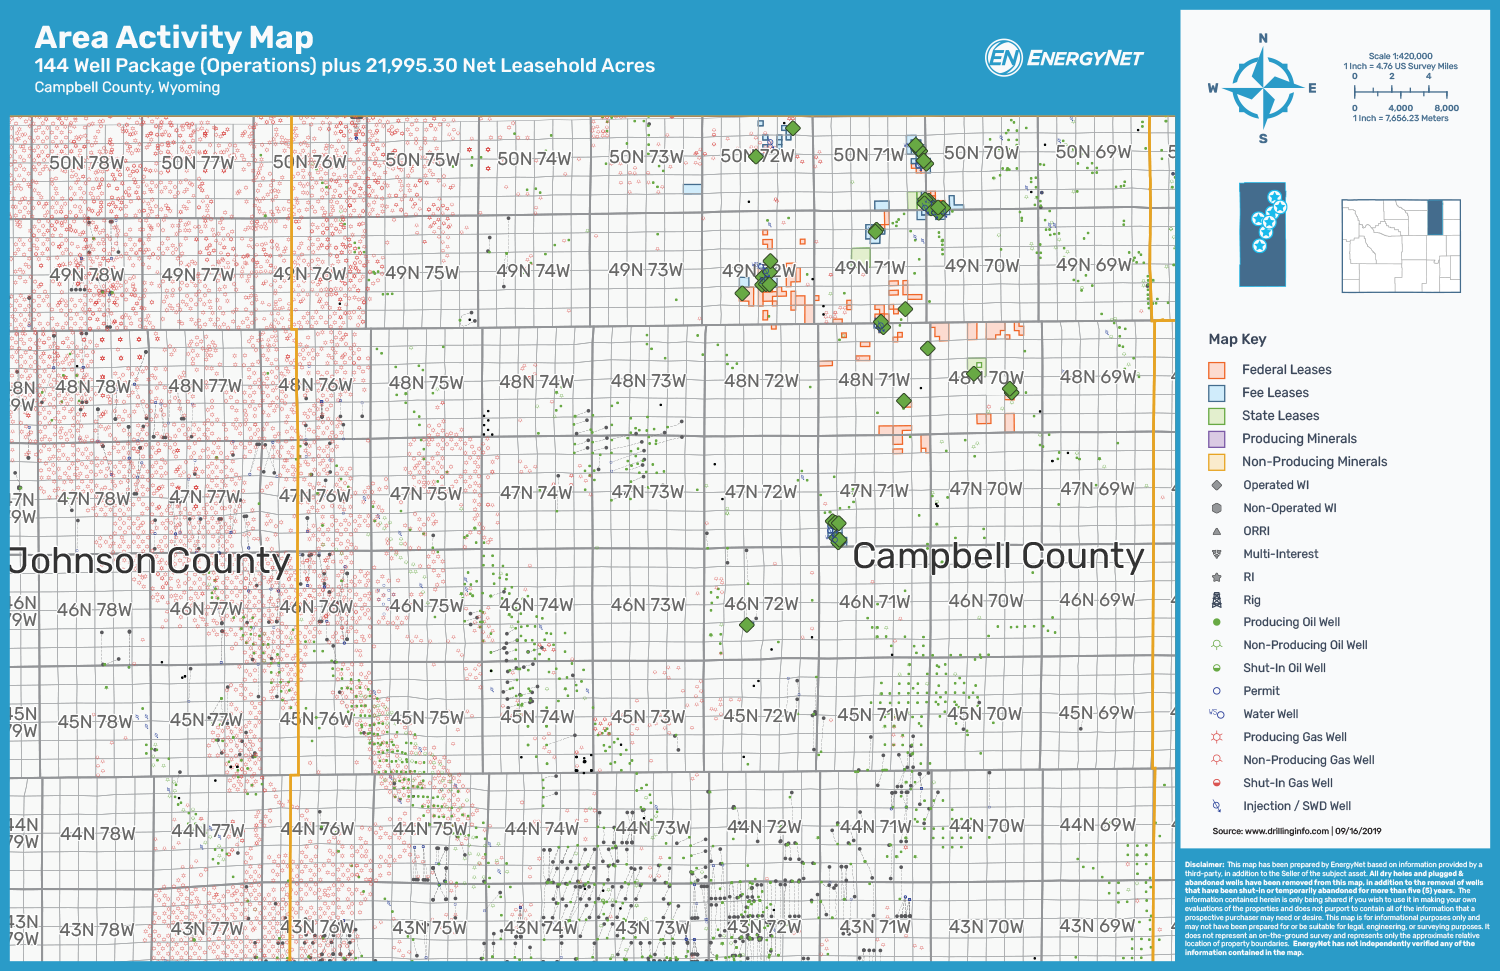 Pine Haven Resources Powder River Basin Campbell County, Wyoming Asset Map (Source: EnergyNet)